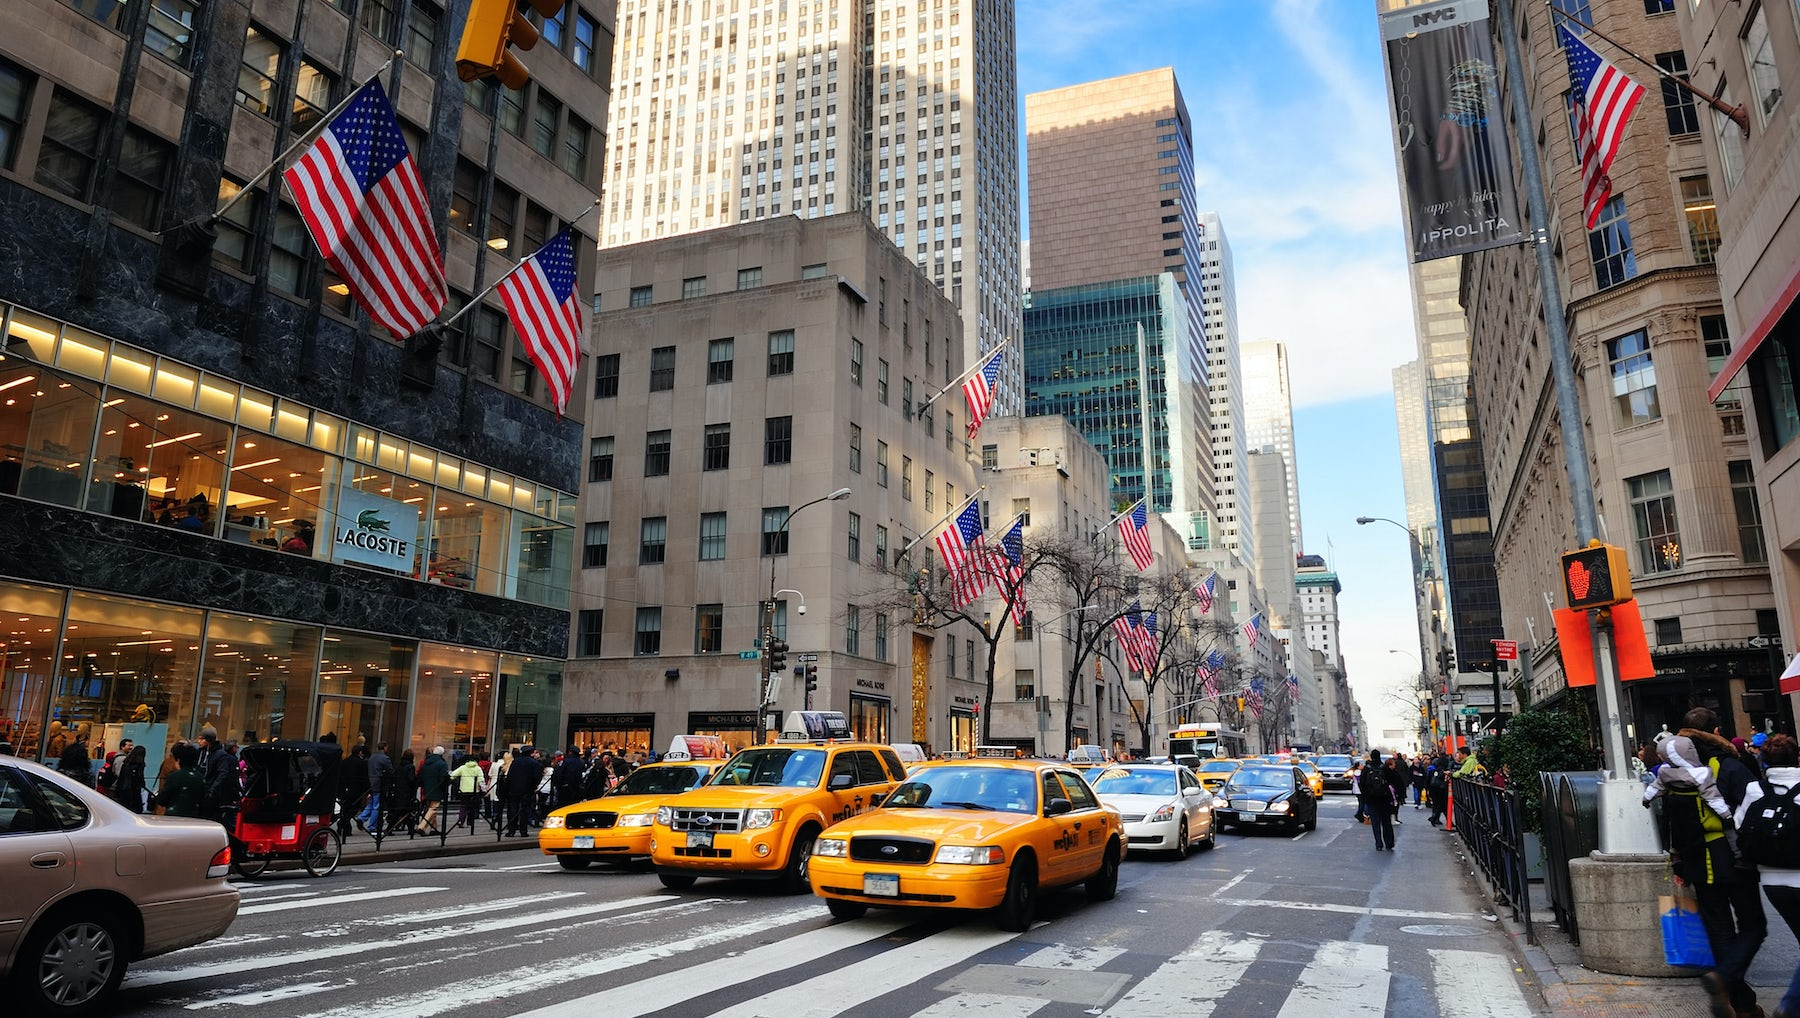 Fifth Avenue, New York | Source: Shutterstock